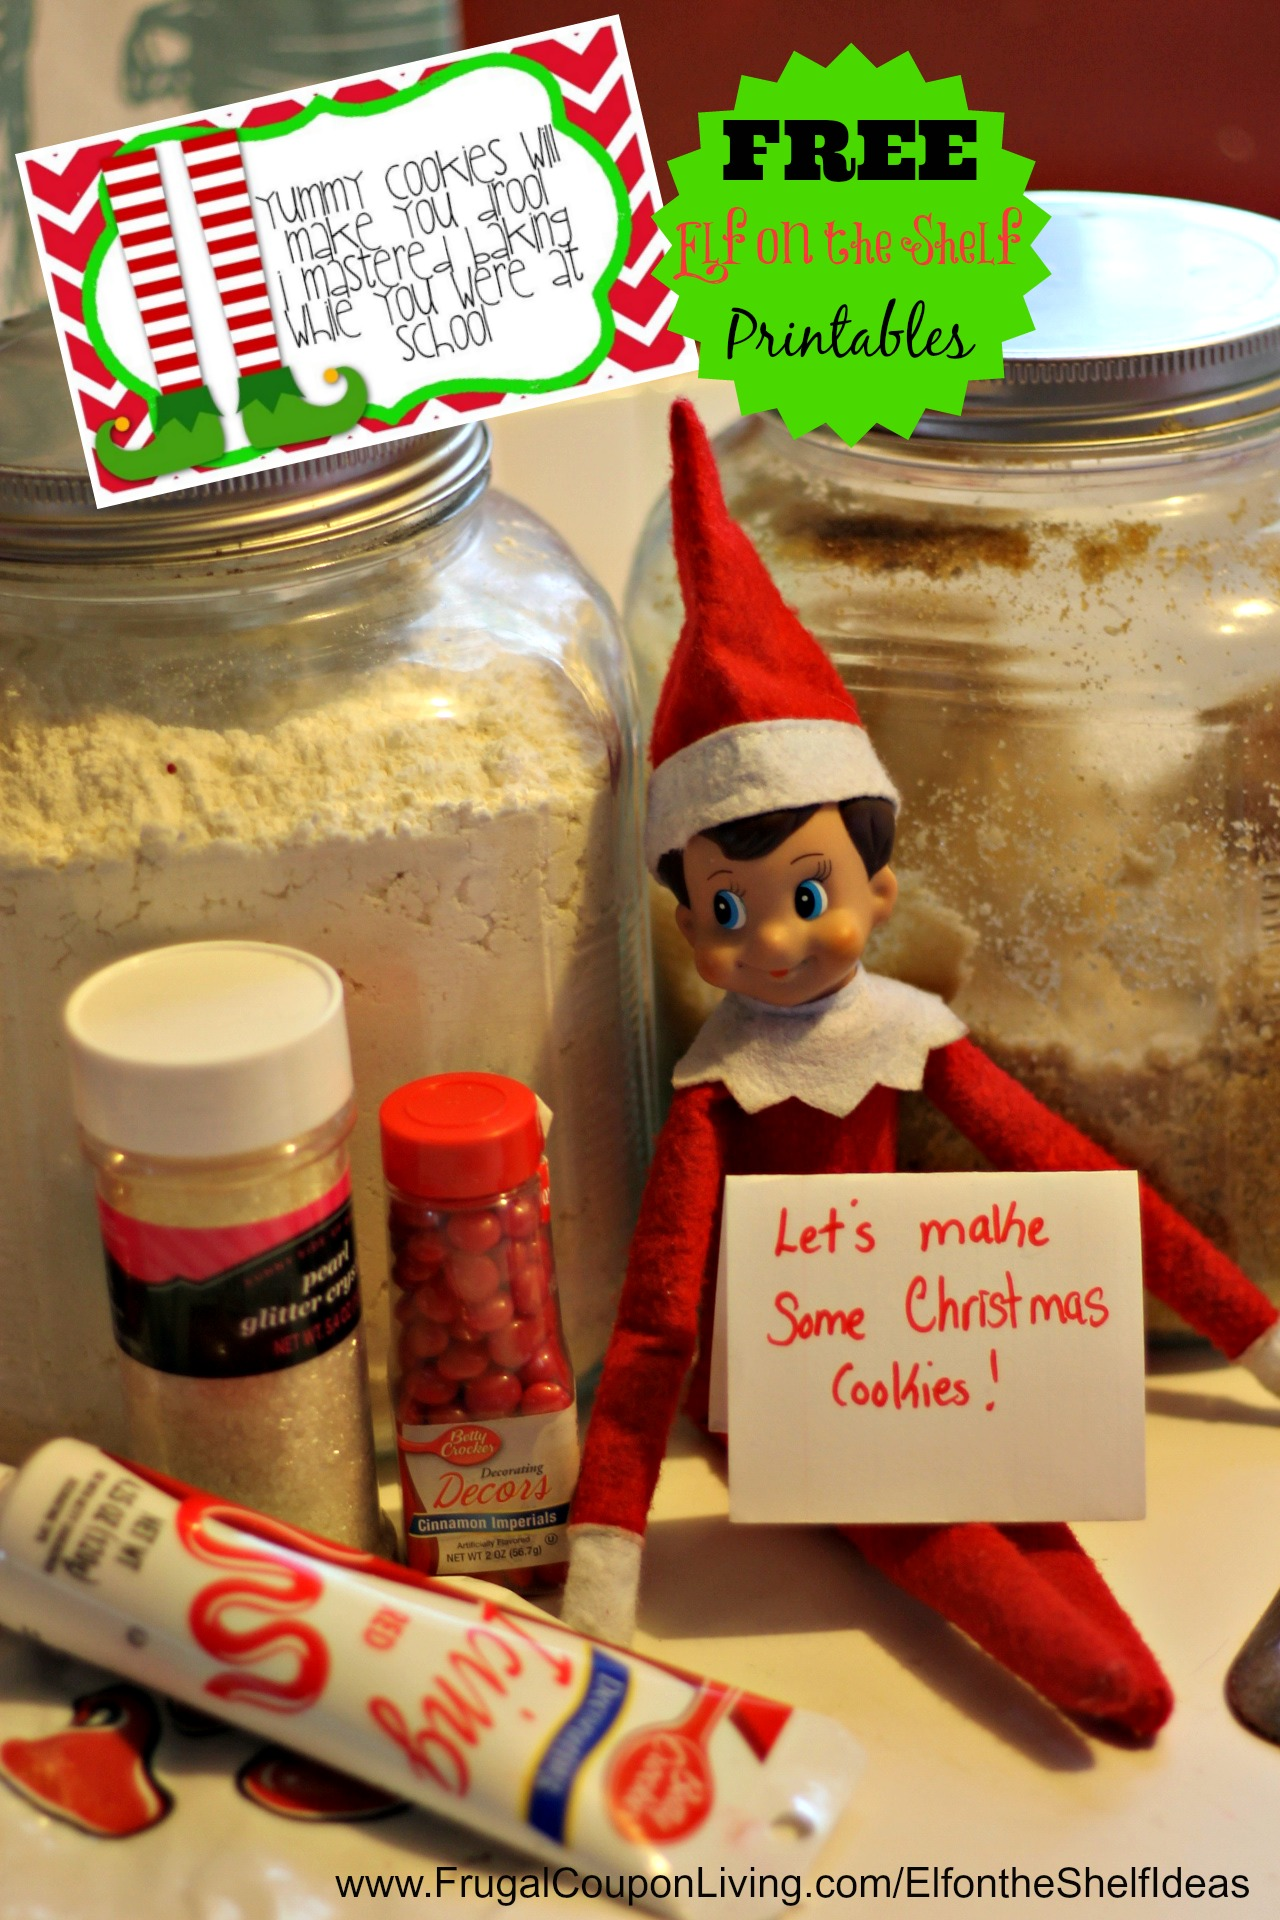 elf-on-the-shelf-ideas-cookies-frugal-coupon-living